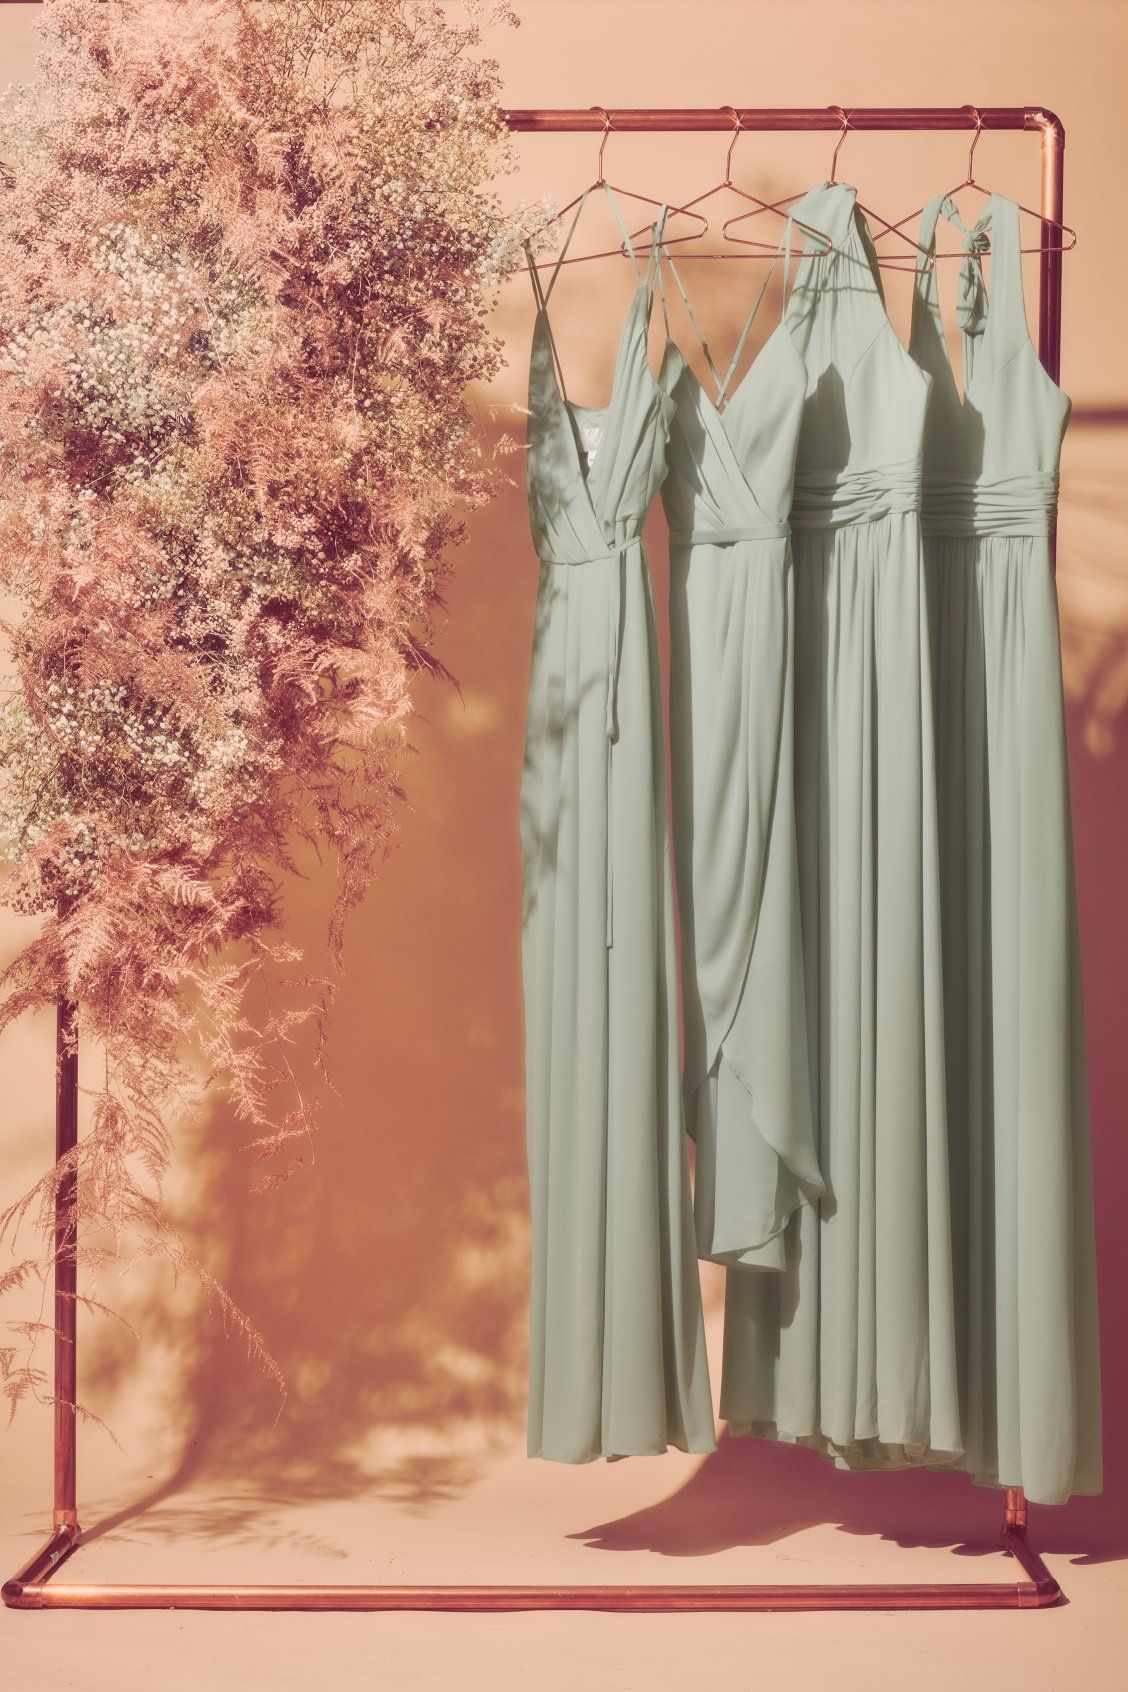 Gorgeous Pale Green Bridesmaid Dresses From David S Bridal Introducing New Color Dusty Green Bridesmaid Dresses Green Bridesmaid Bridesmaid Dresses Dusty Sage